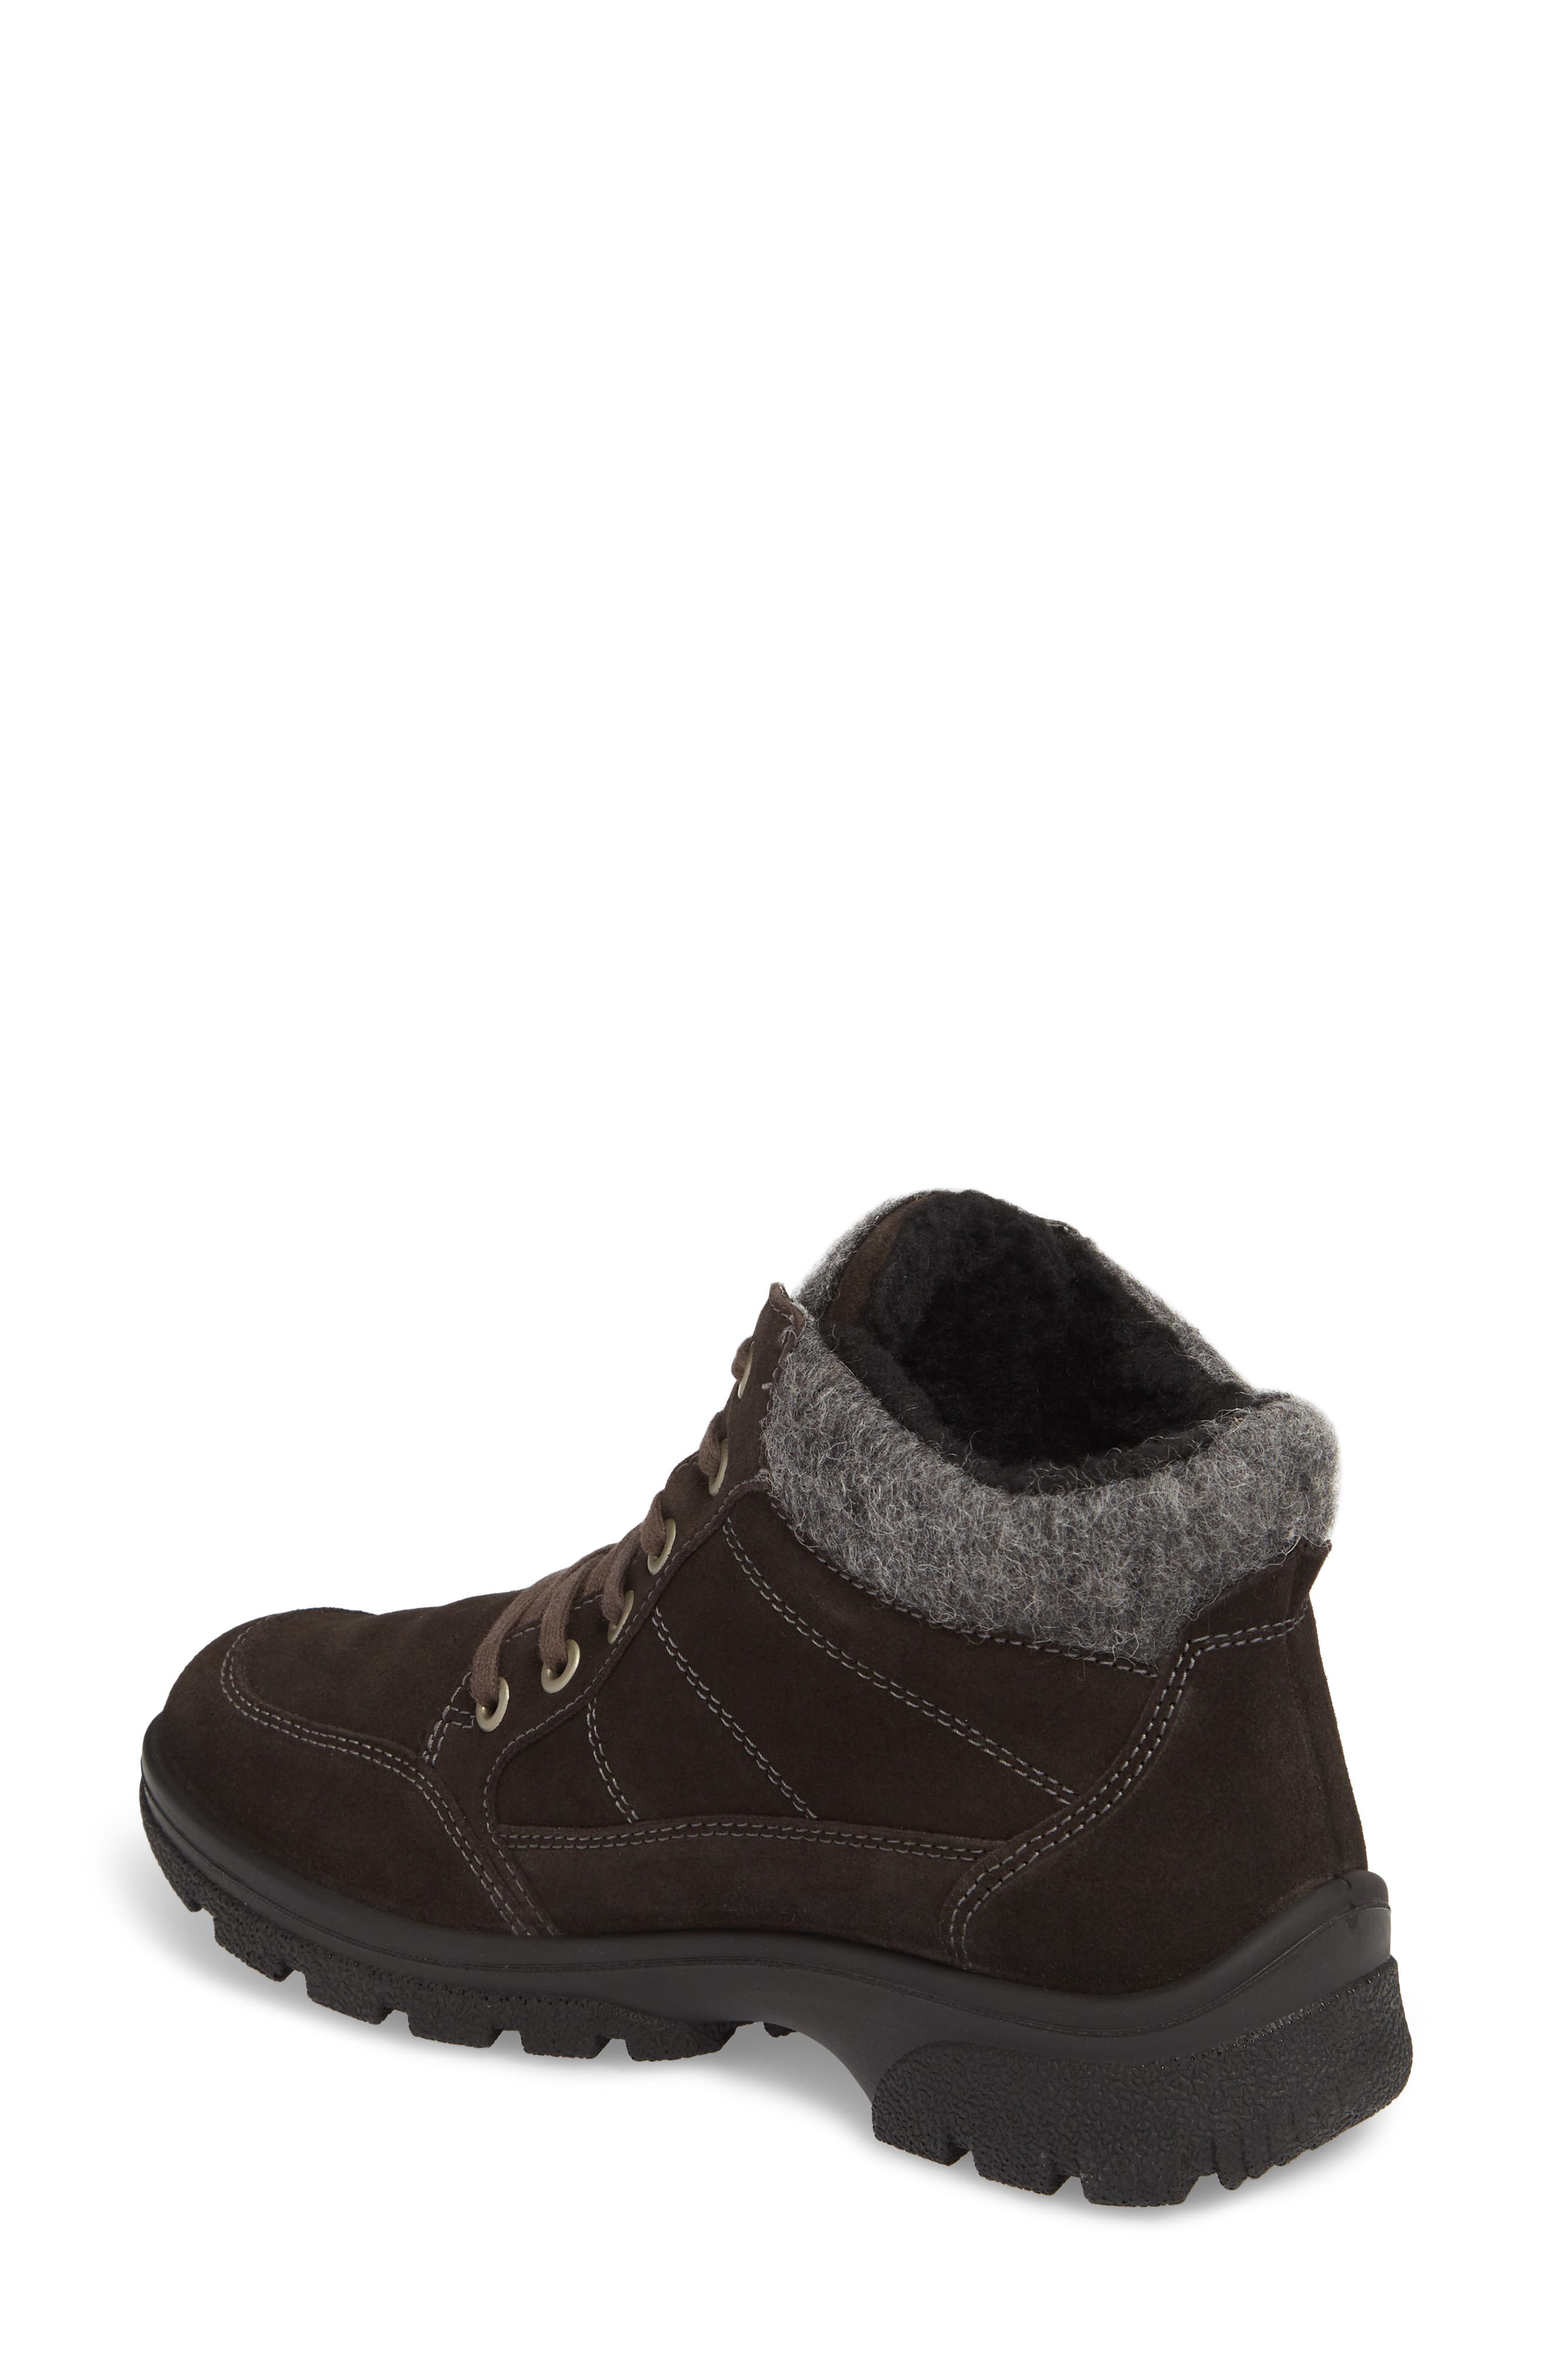 Waterproof Gore-Tex<sup>®</sup> Hiking Boot,                             Alternate thumbnail 2, color,                             LAVA SUEDE